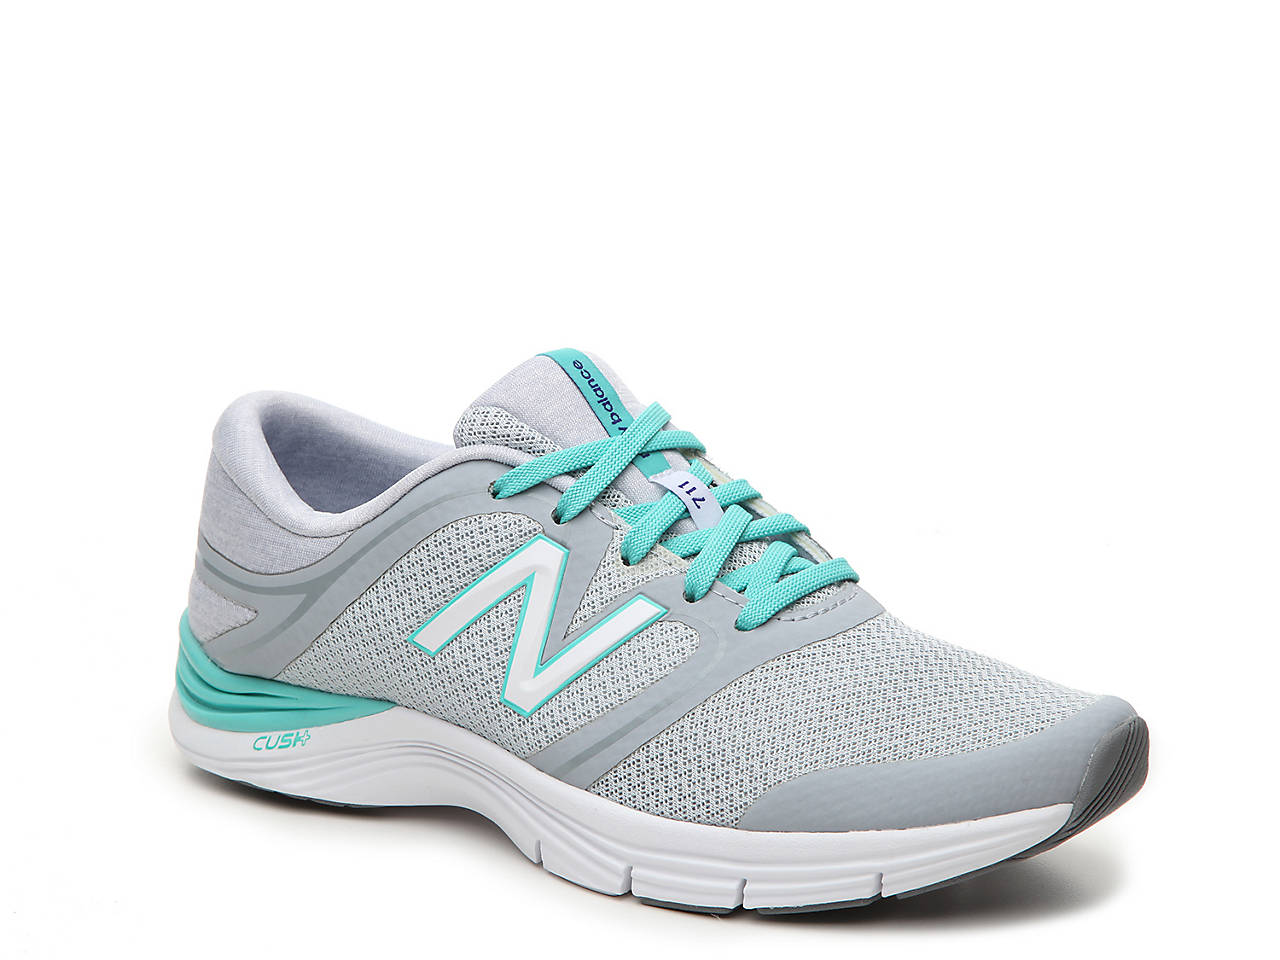 New Balance 711 Shoes okj9o